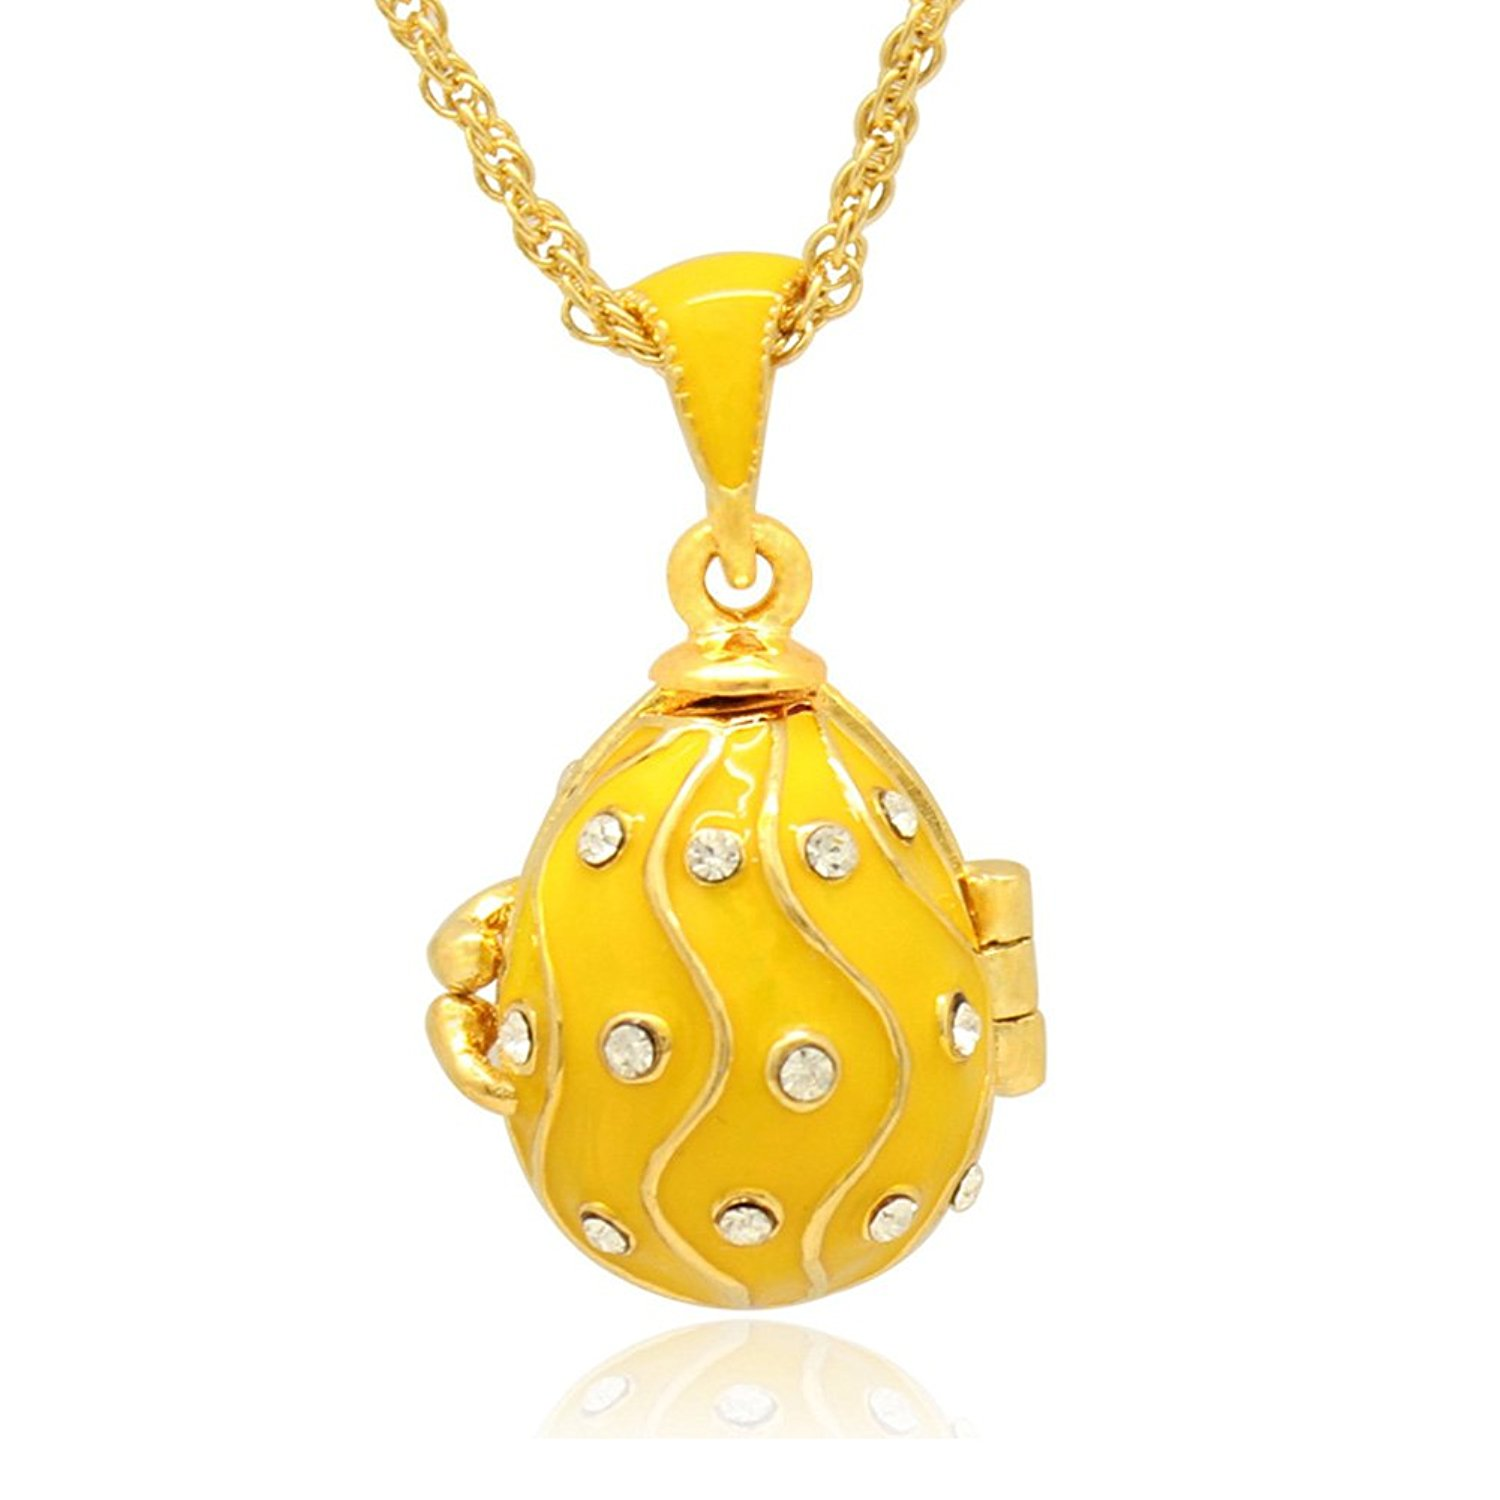 MYD Jewelry Gold Plated Filligree Enameled Clear Crystal Faberge Egg Locket Pendant Necklace